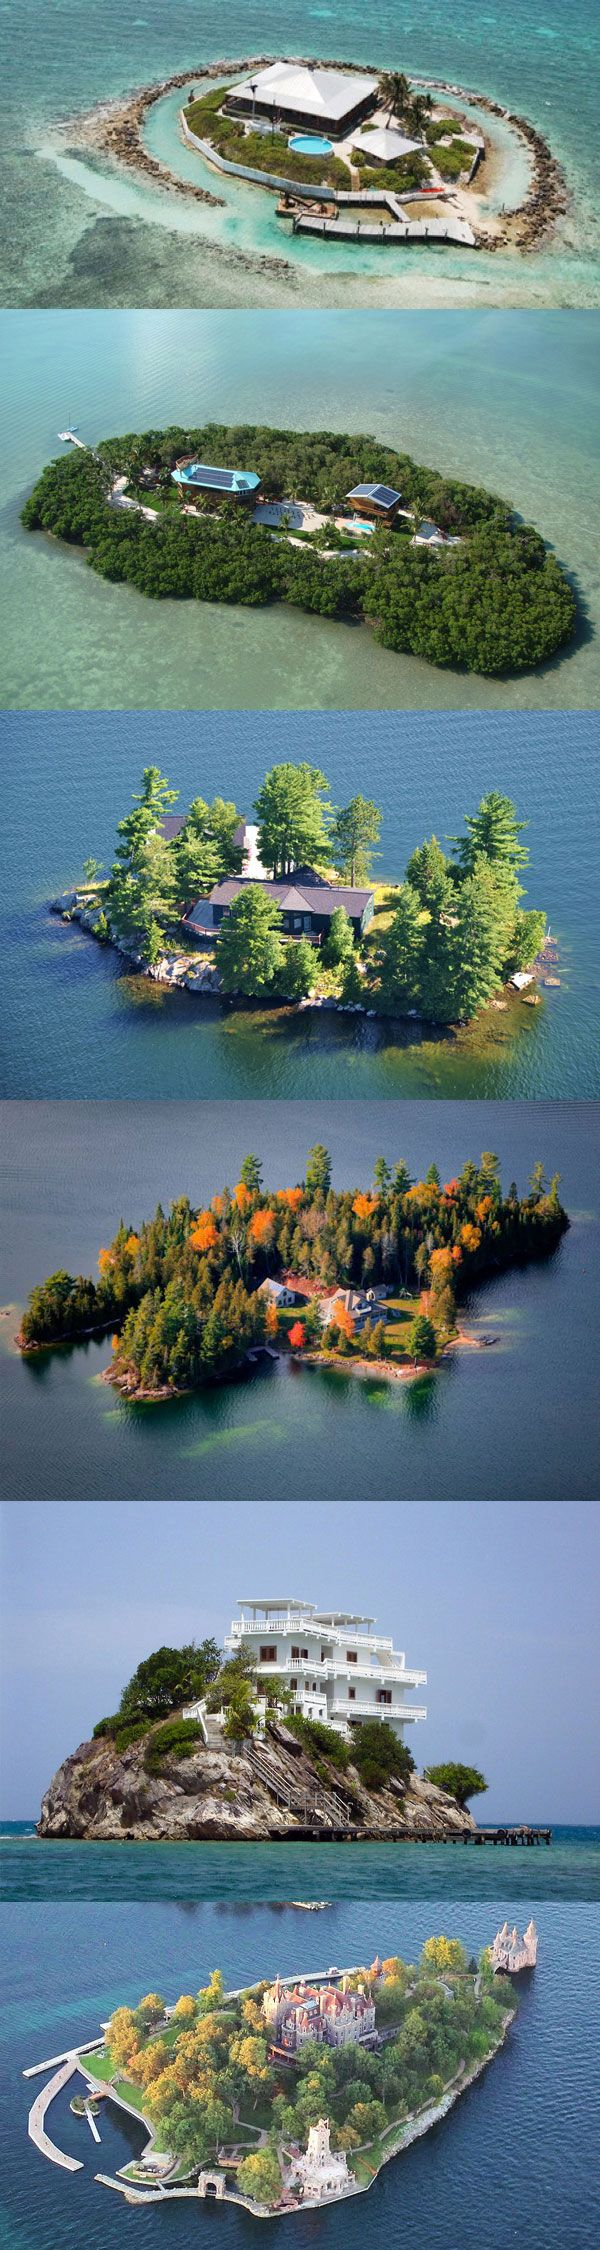 Homes built on private islands… All problems solved buy big island with bridge to mainland / docks / air strip / privite train